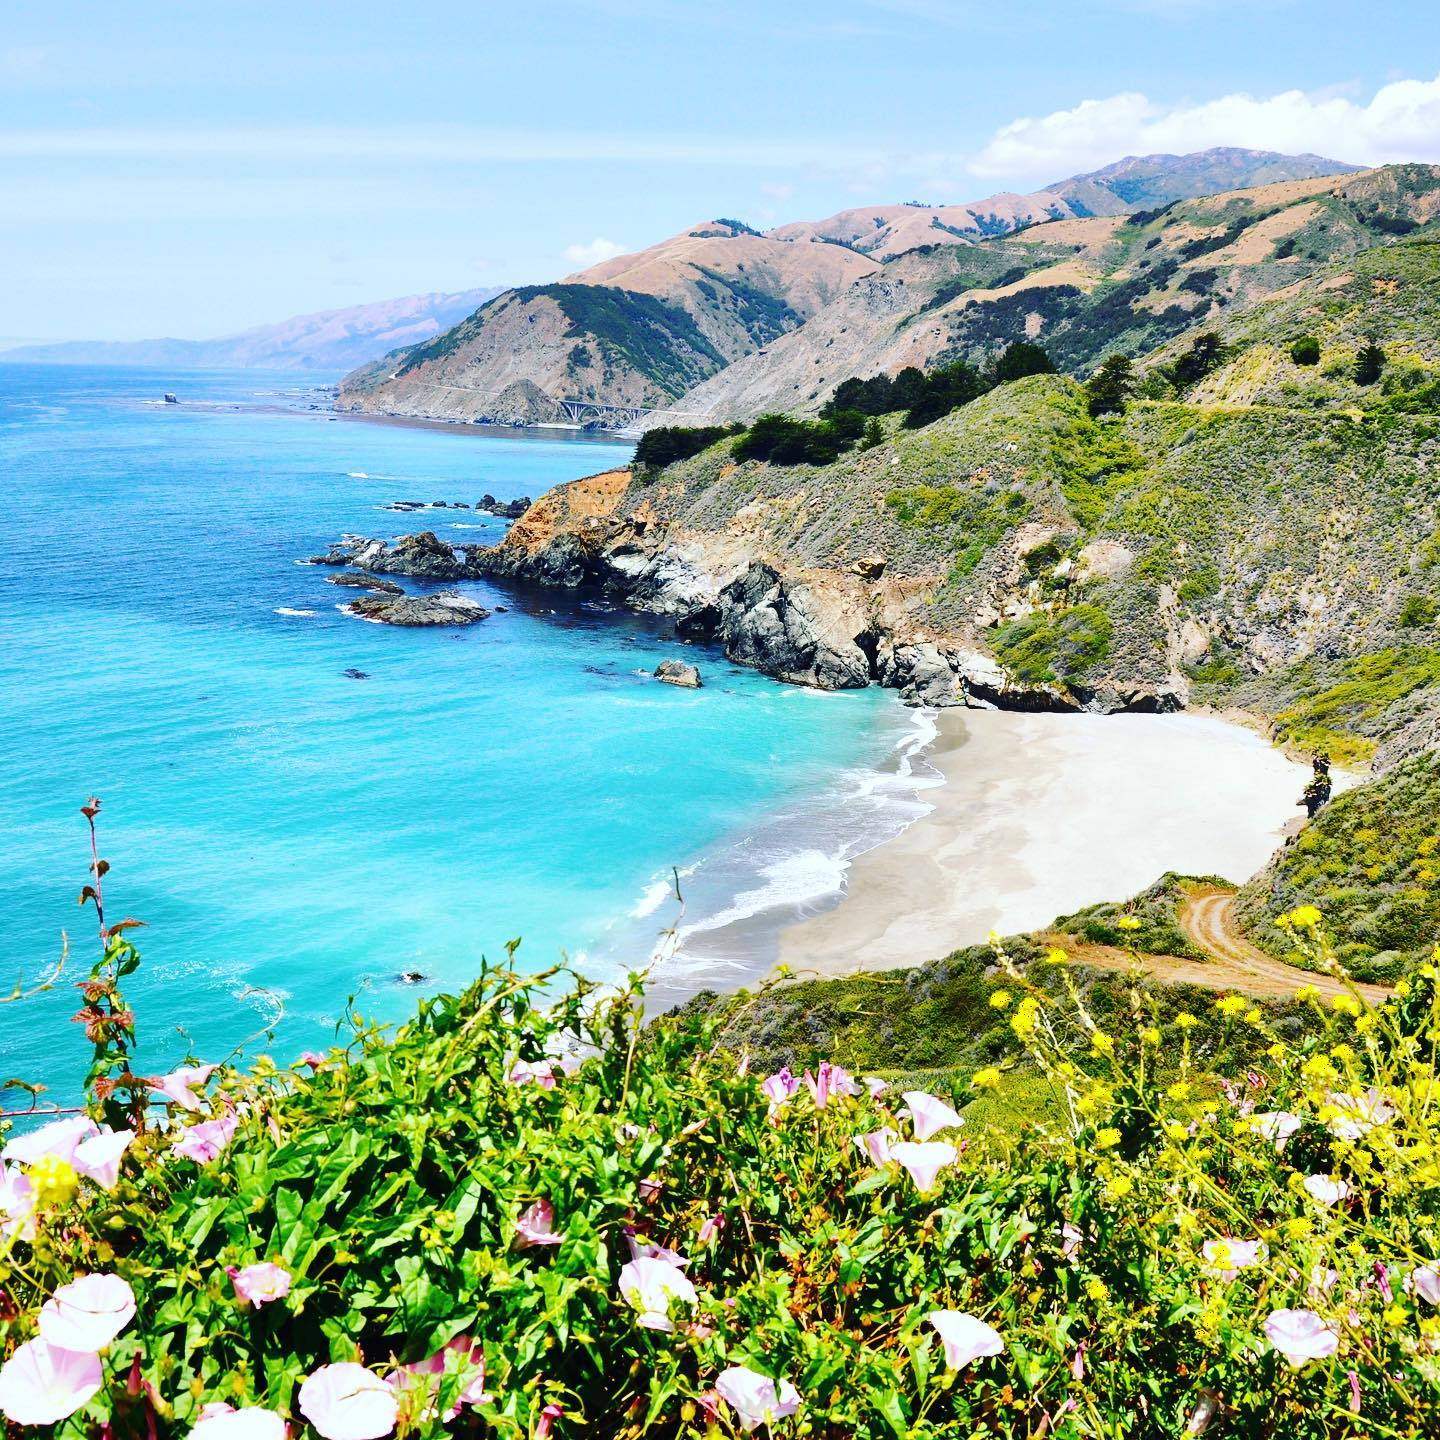 California Dreamin' - Pacific Coast Highway #usatravels #usa🇺🇸 #california #californiadreaming #californialove #pacificcoast #pacificcoasthighway #roadtrip #roadtripusa🇺🇸 #scenicdrives #scenicviews #ontheroad #stunningview #sobeautiful #naturephotography #naturelovers #breathtaking #breathtakingviews #mothernature #landscapephotography #landscape_lovers #beach